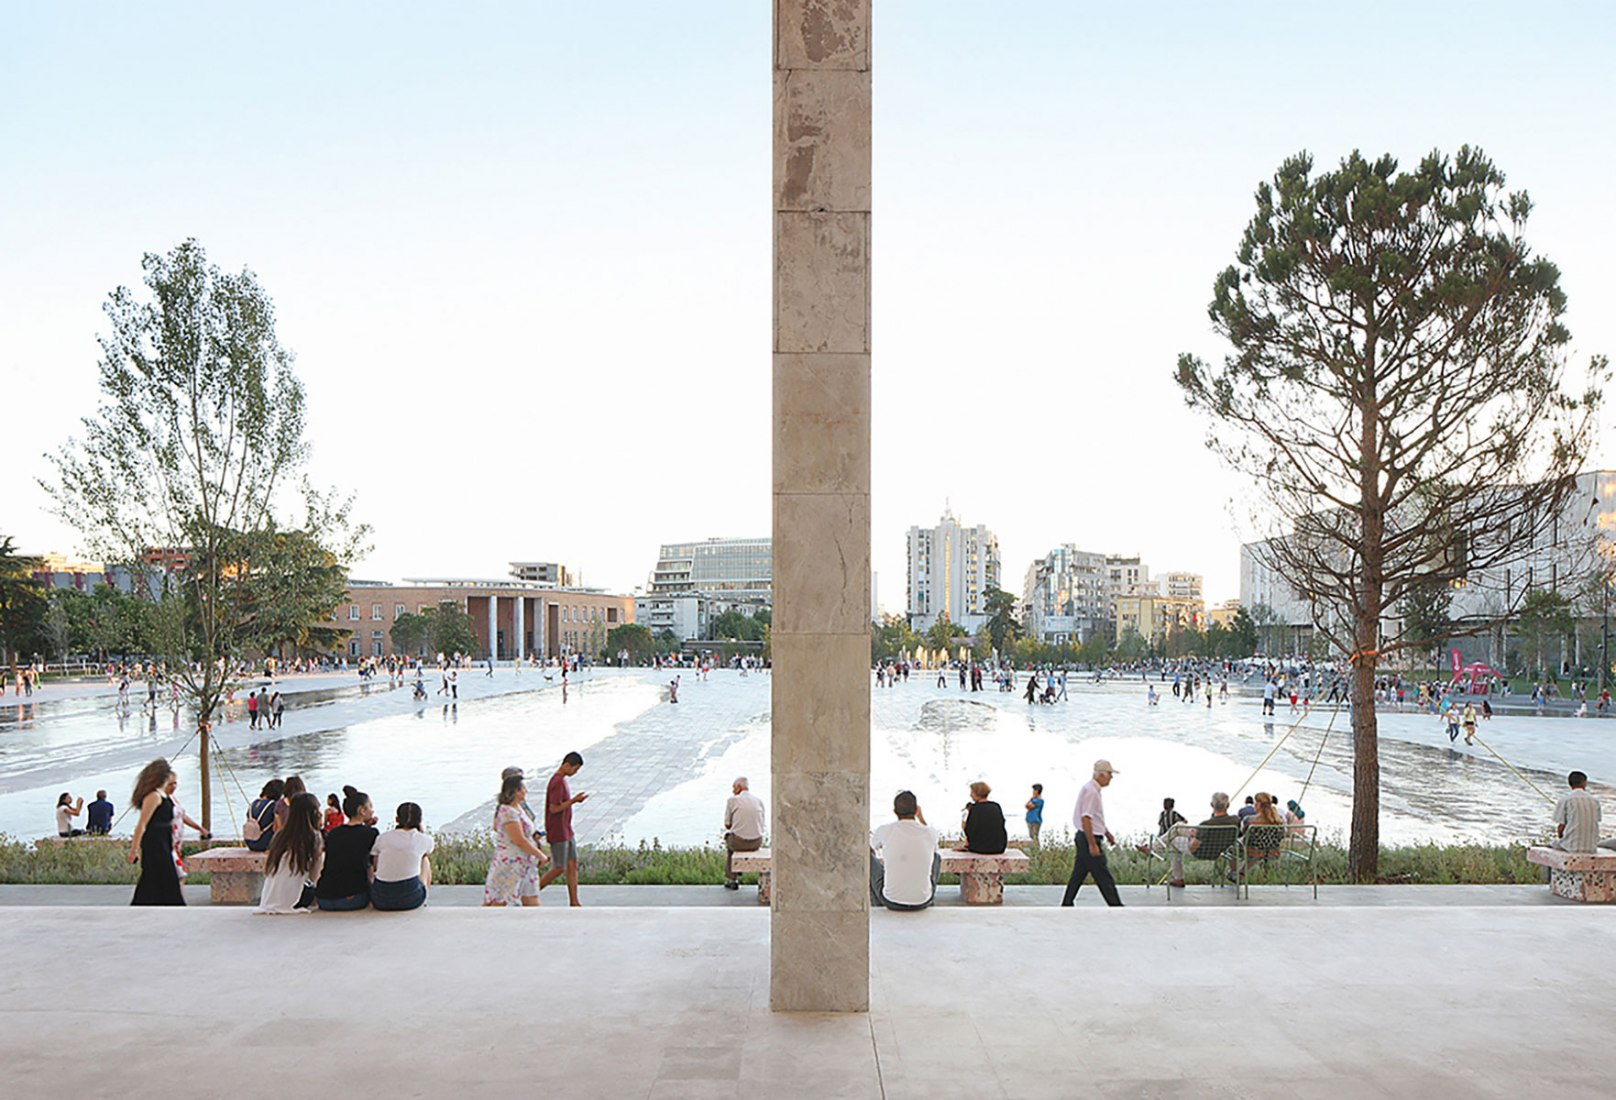 Skanderbeg Square. Renovation of Skanderbeg Square by 51N4E. Winner of the European Prize for public space 2018. Photograph by Filip Dujardin